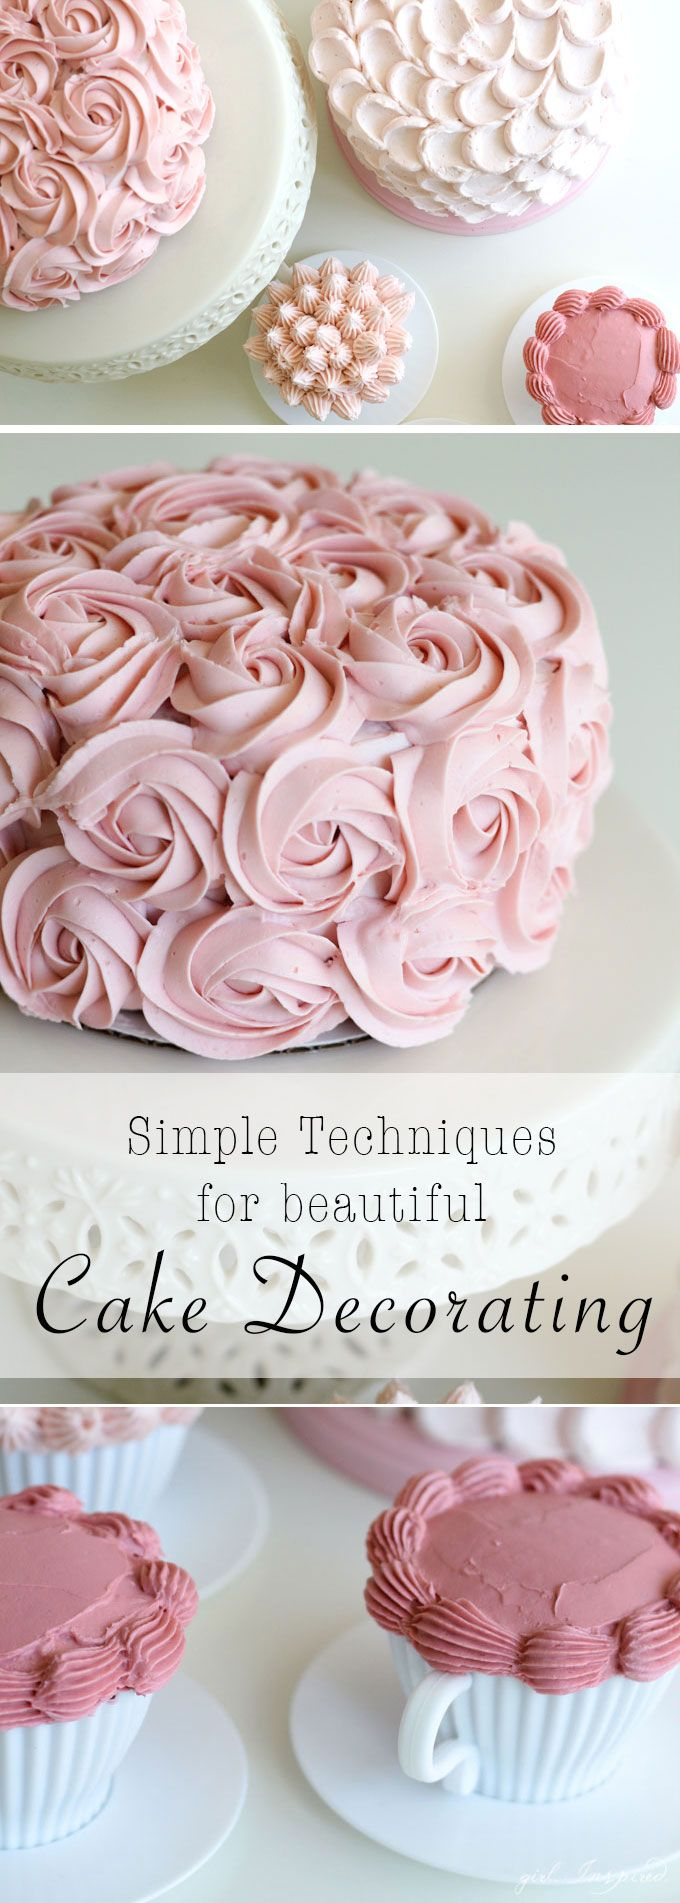 Best Simple Cake Decorating Ideas On Pinterest Simple Cakes - Russian bakery uses brushstroke decorations to create the most amazing cakes